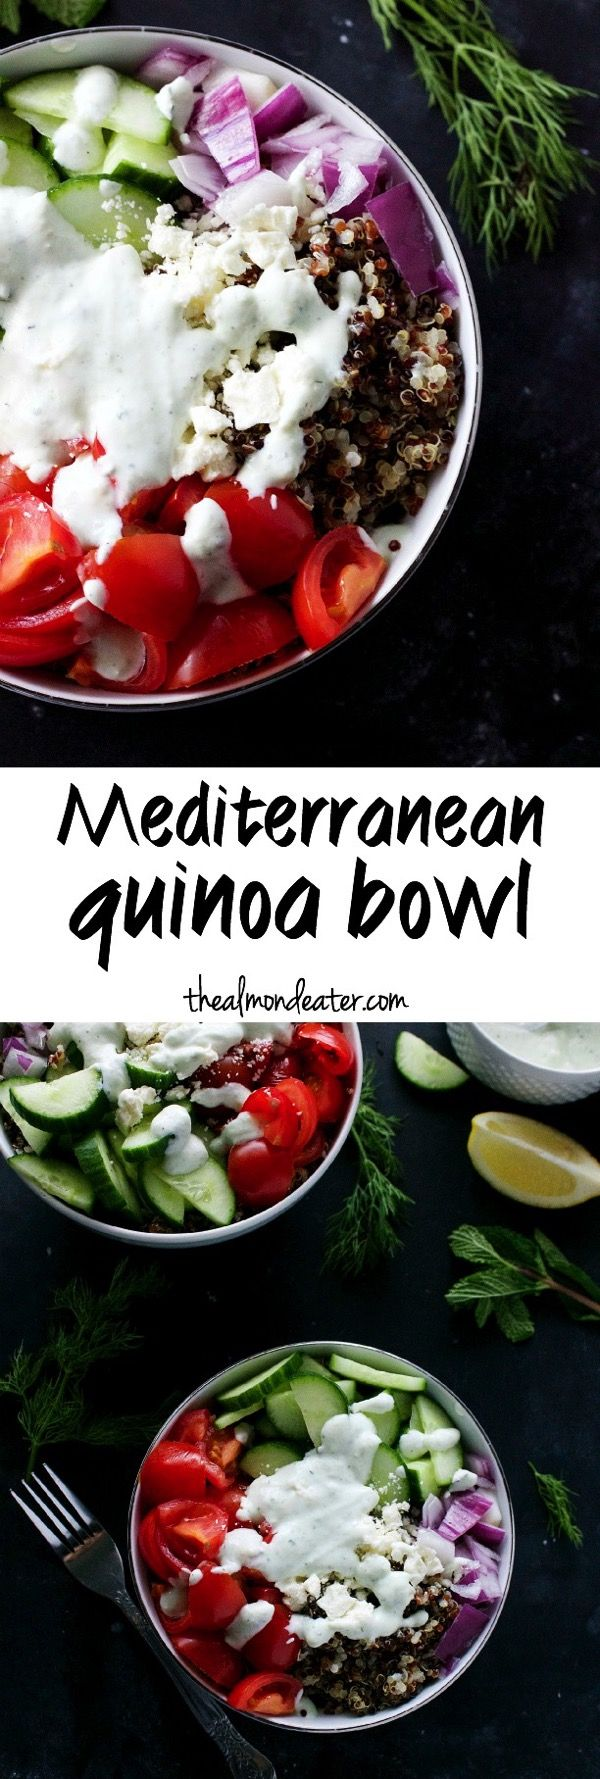 Quinoa topped with tomatoes, cucumbers, onions, and cheese and then drizzled in a healthy, homemade tzatziki sauce | thealmondeater.com